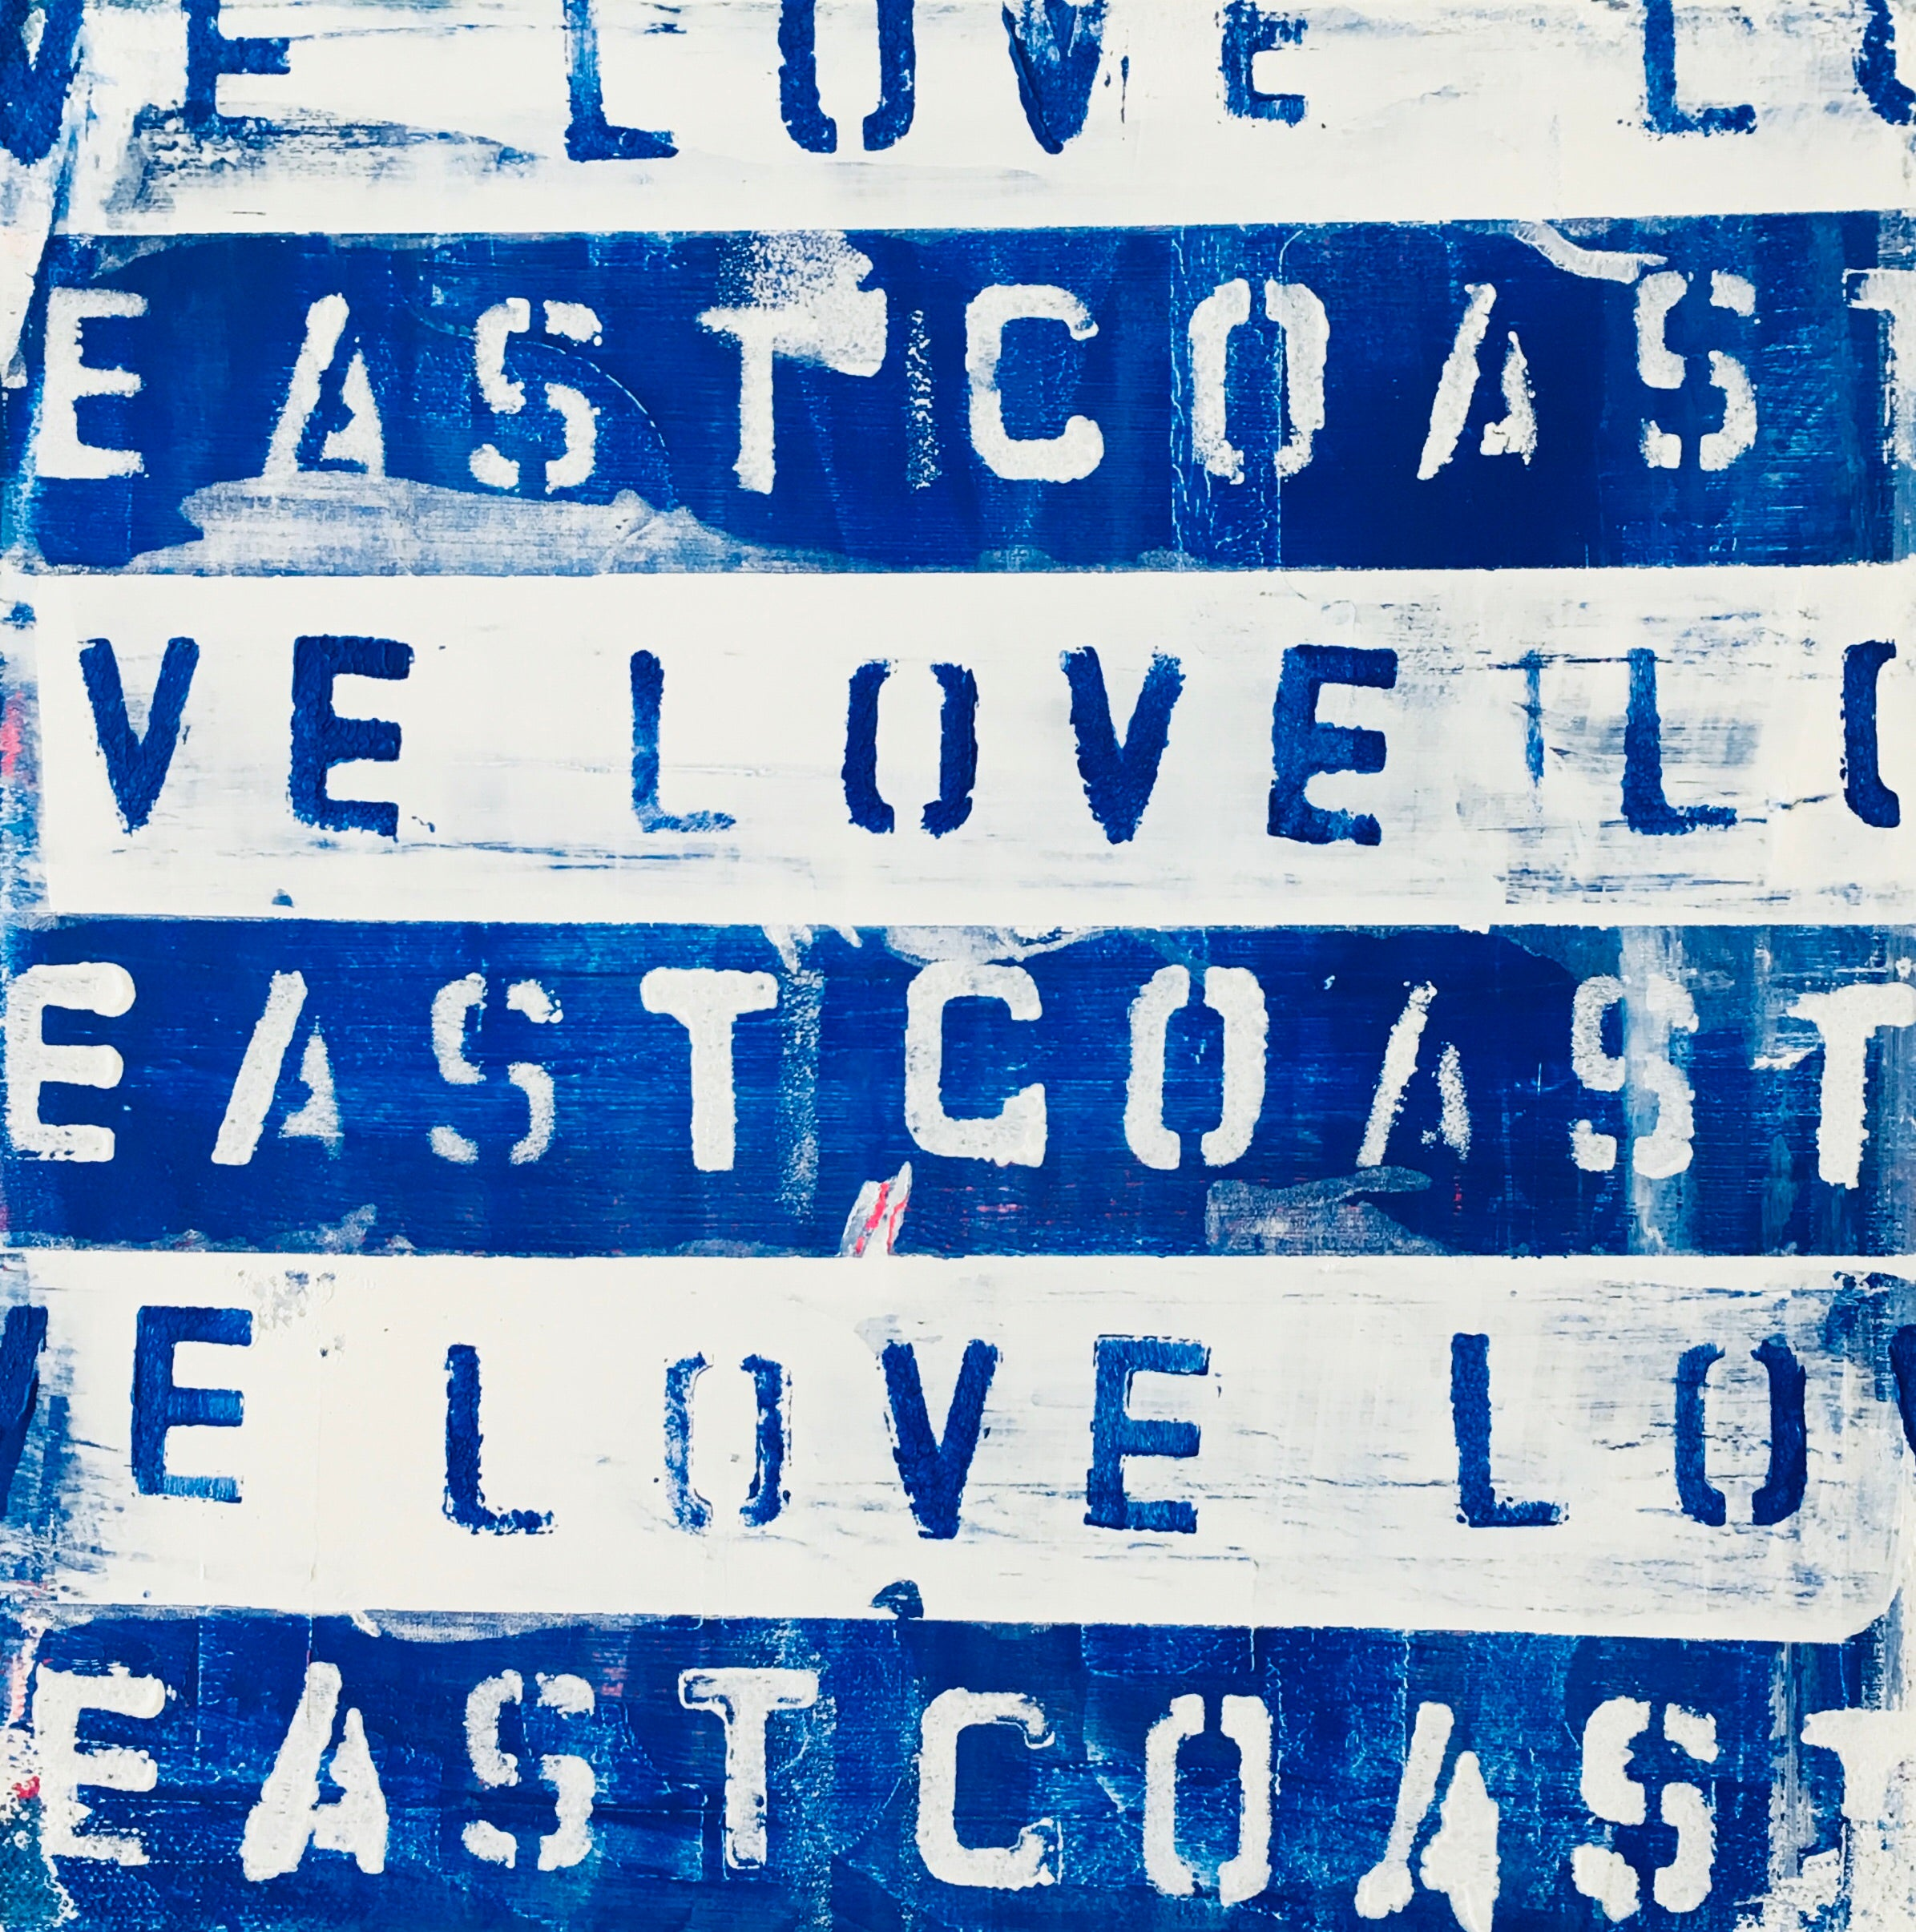 EAST COAST LOVE MINI NO. 2